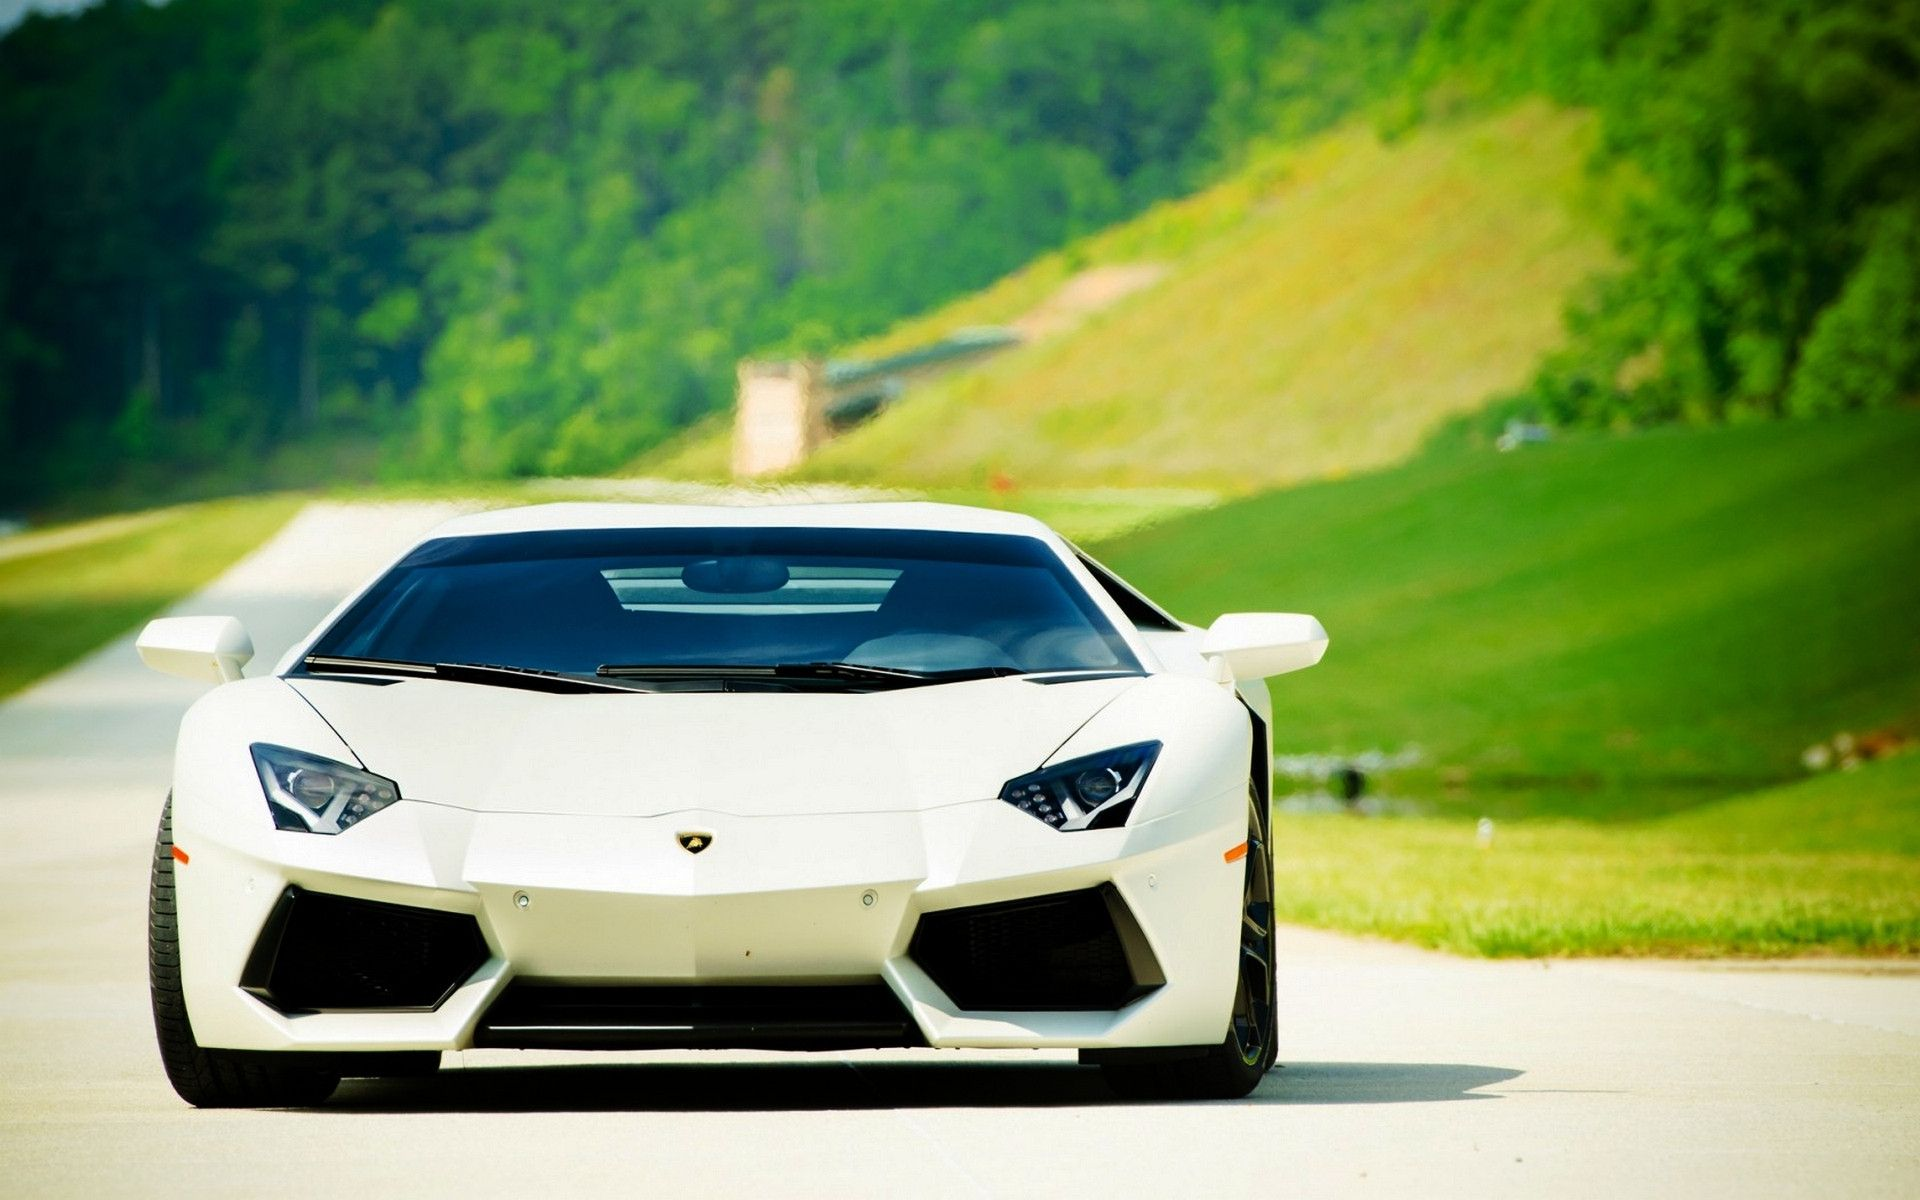 Marvelous Lamborghini Gallardo Hd Wallpapers P Ultra HD K Lamborghini Wallpapers HD,  Desktop Backgrounds 1920x1200